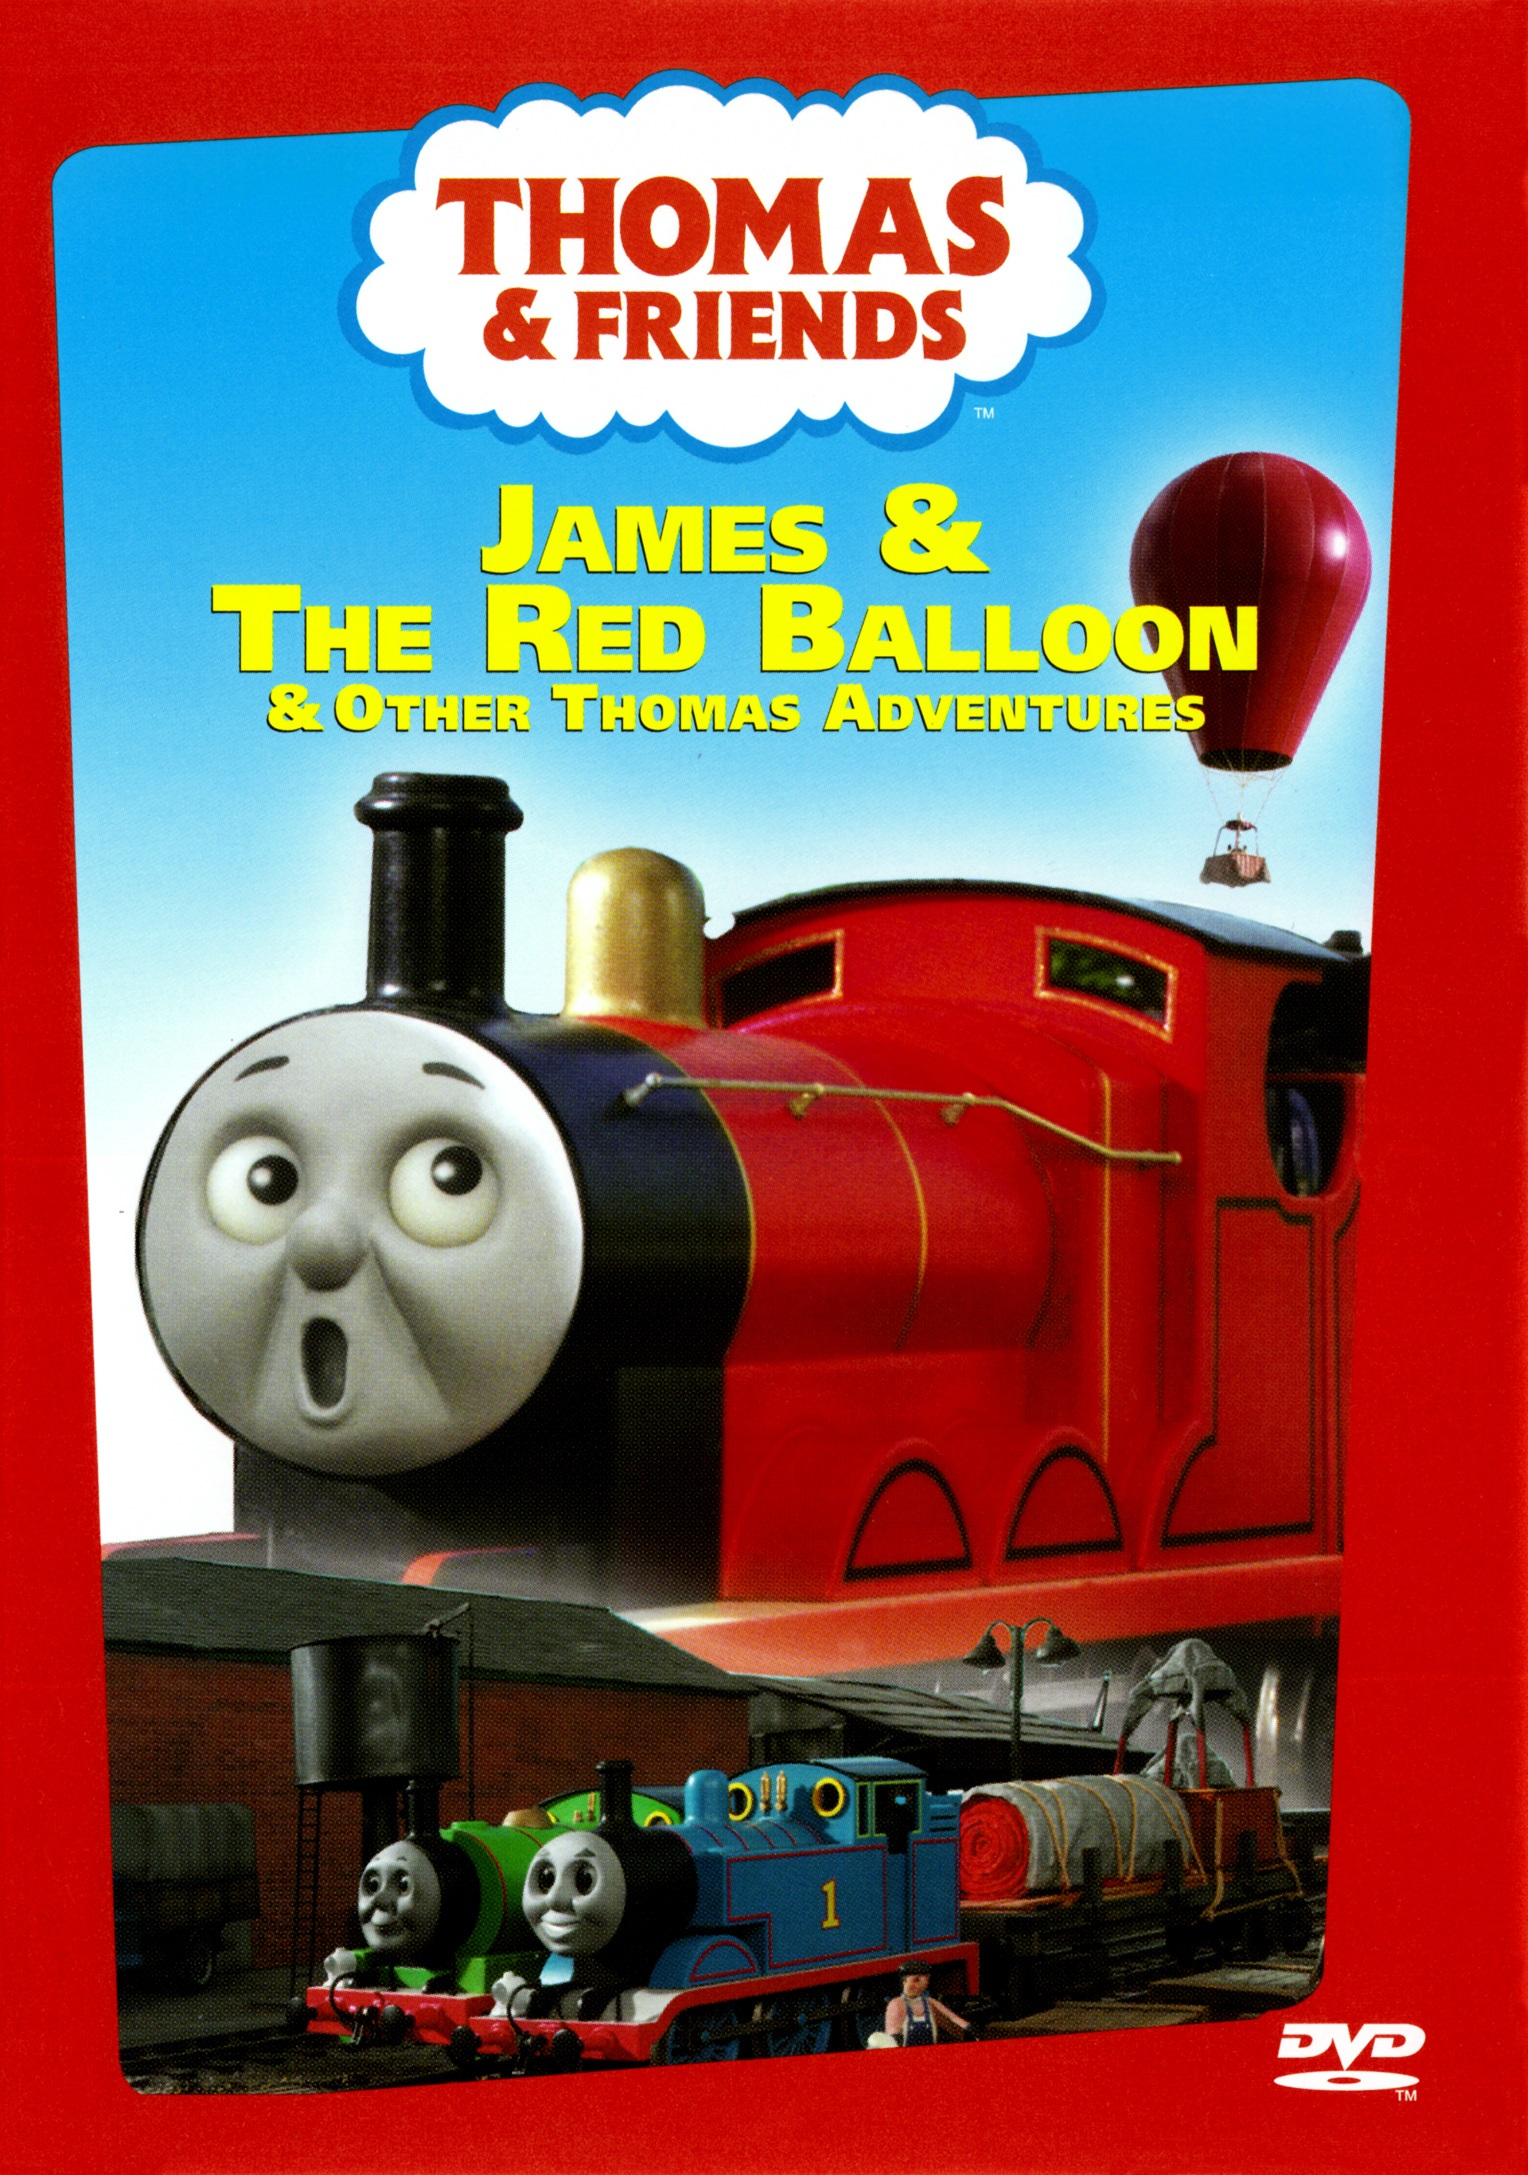 James & the Red Balloon and Other Thomas Adventures